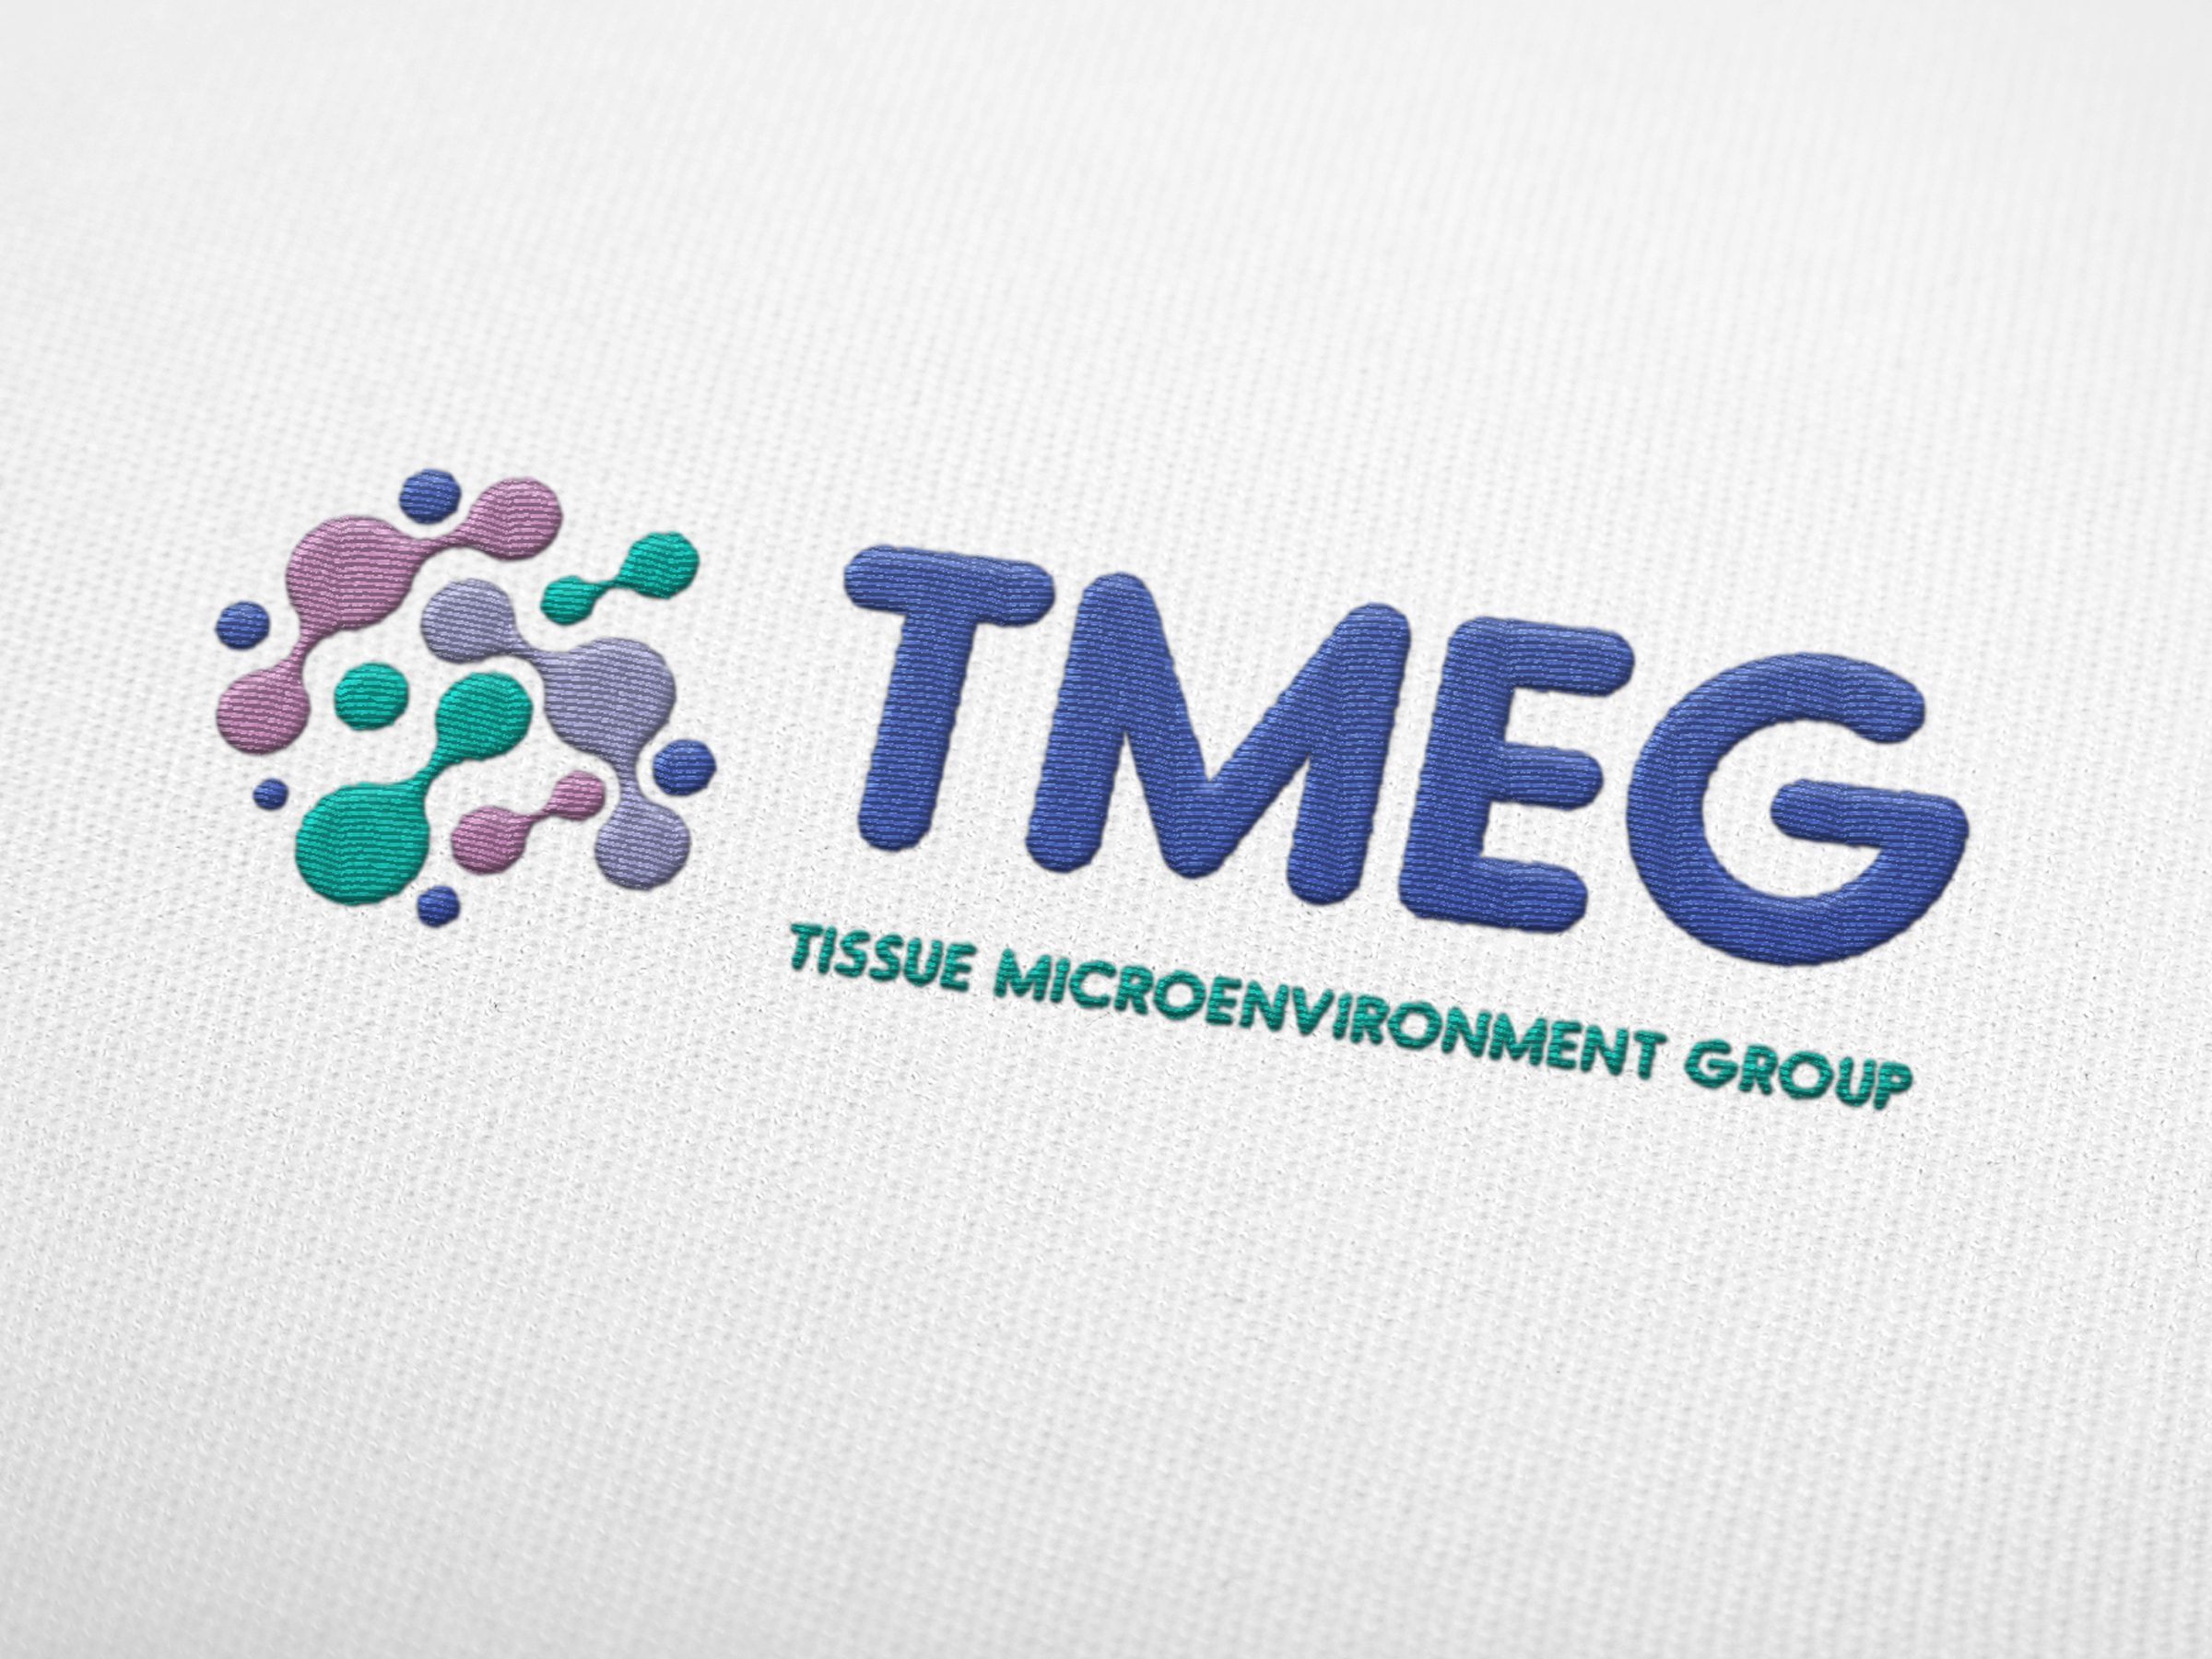 Tissue Microenvironment Group